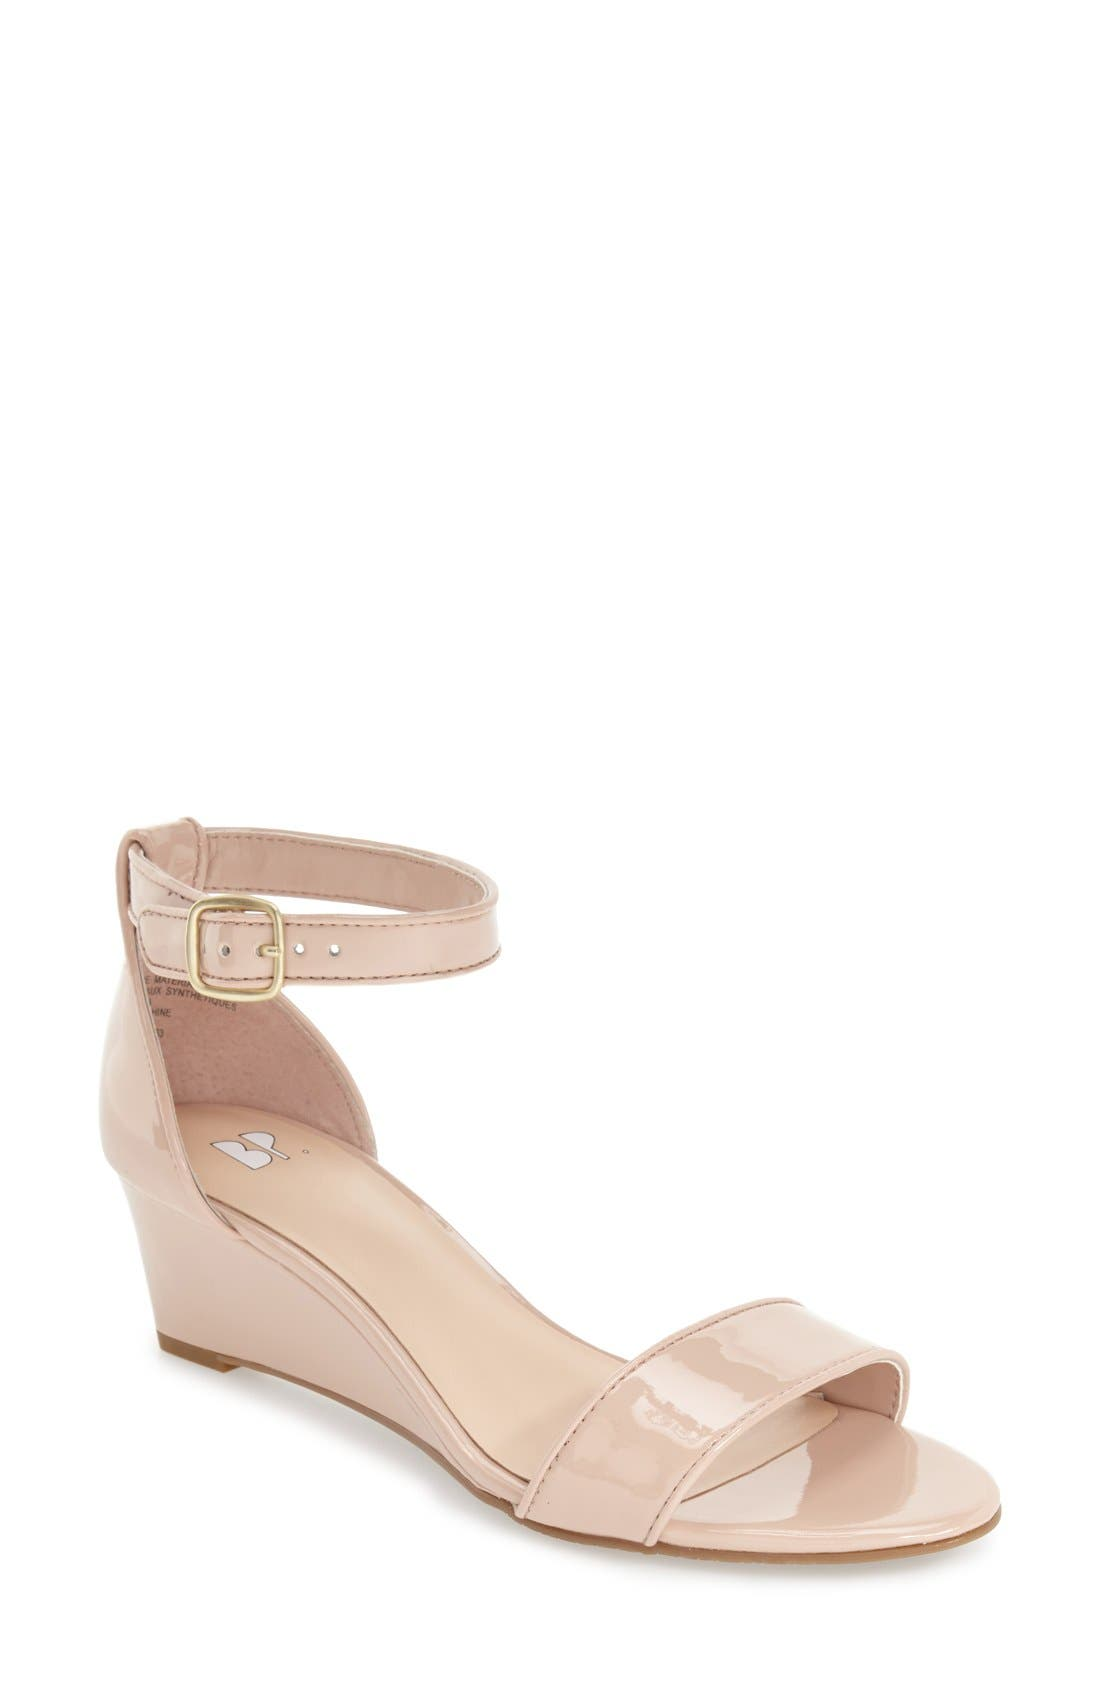 Main Image - BP. 'Roxie' Wedge Sandal (Women)